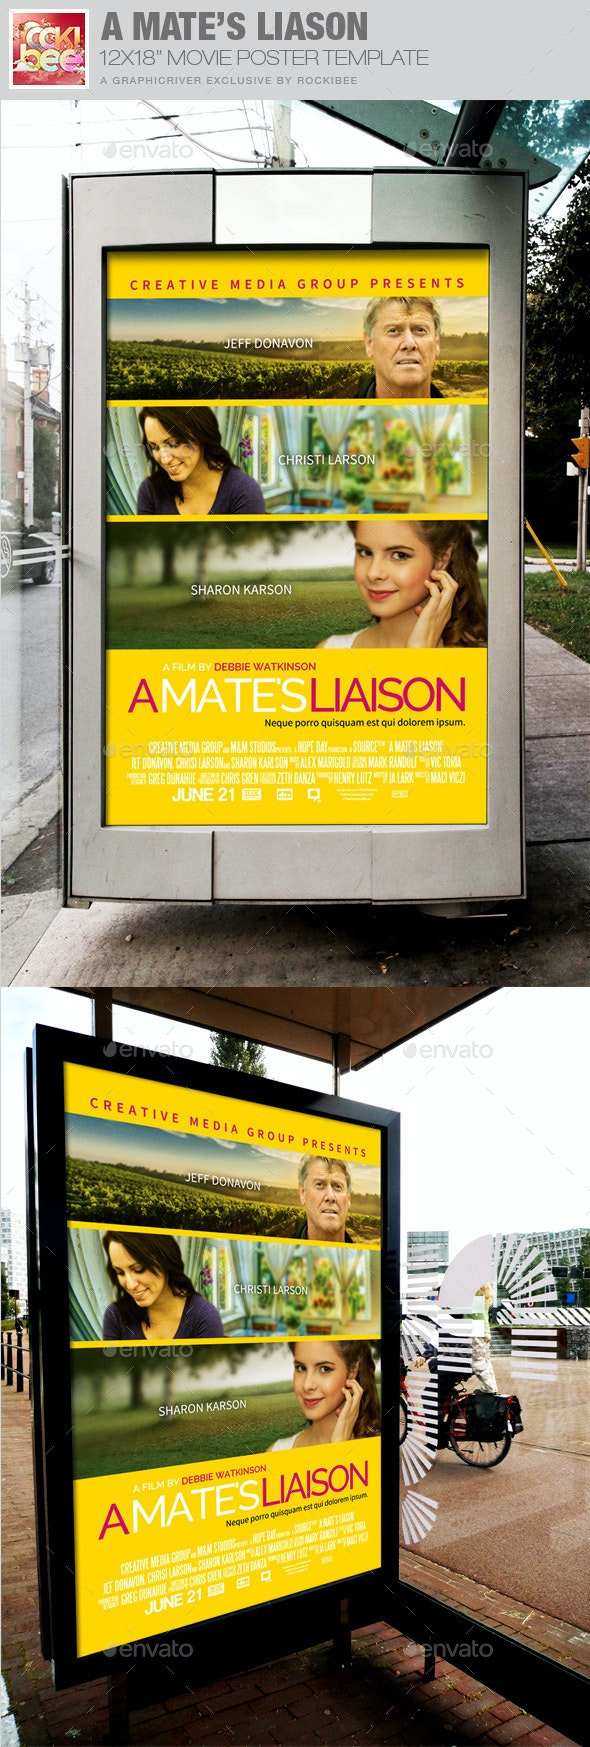 A Mate's Liaison Movie Poster Template - Miscellaneous Events